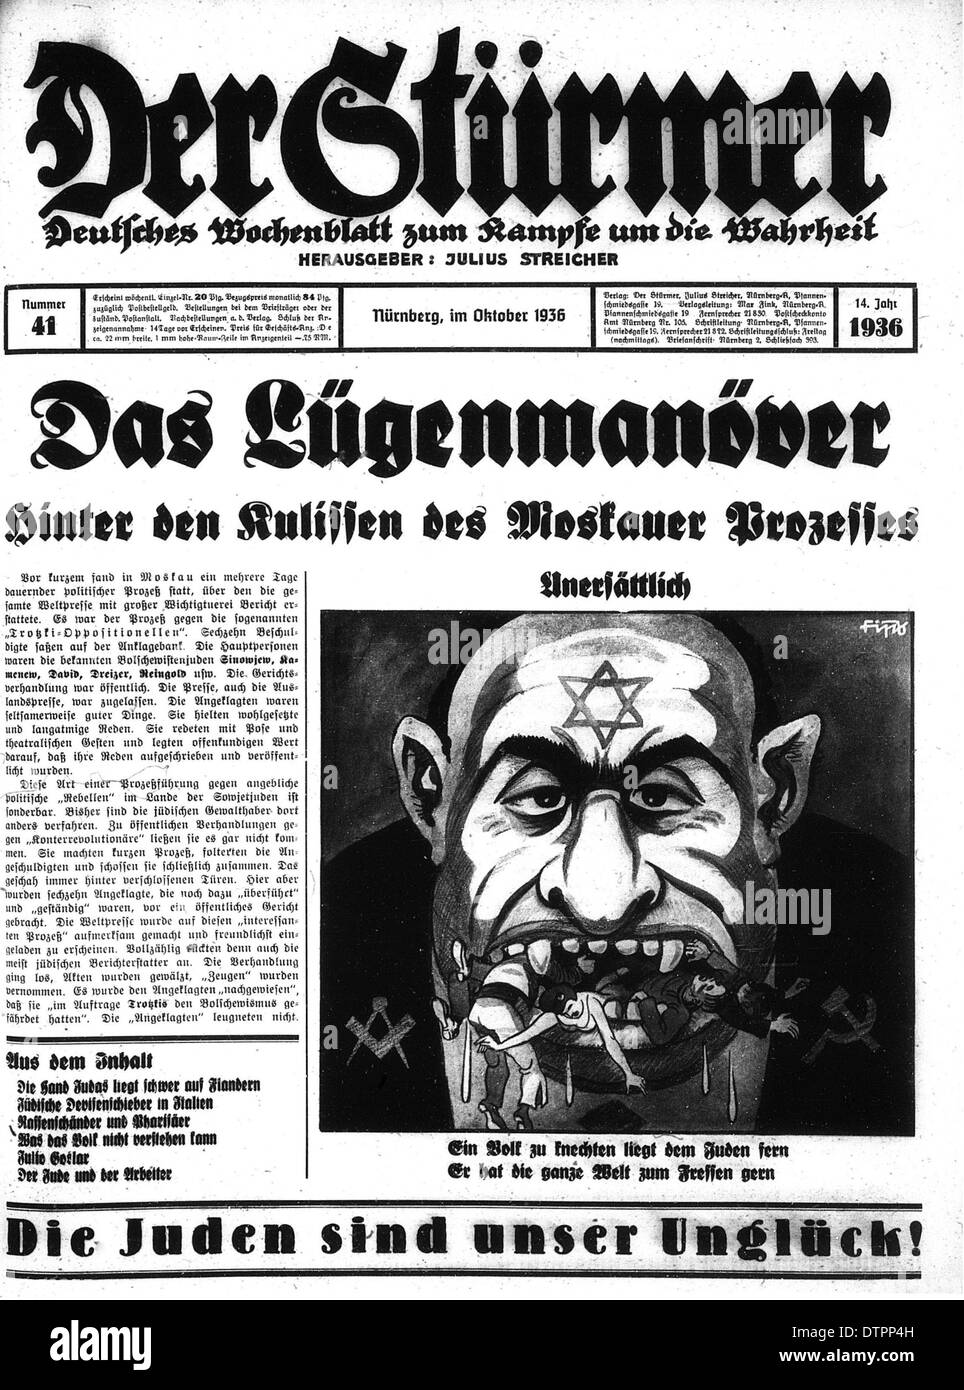 Frontpage of Der Sturmer a weekly Nazi German newspaper published by Julius Streicher from 1923 to the end of War 2.in which the Jew is shown as an ugly, angry looking man. - Stock Image